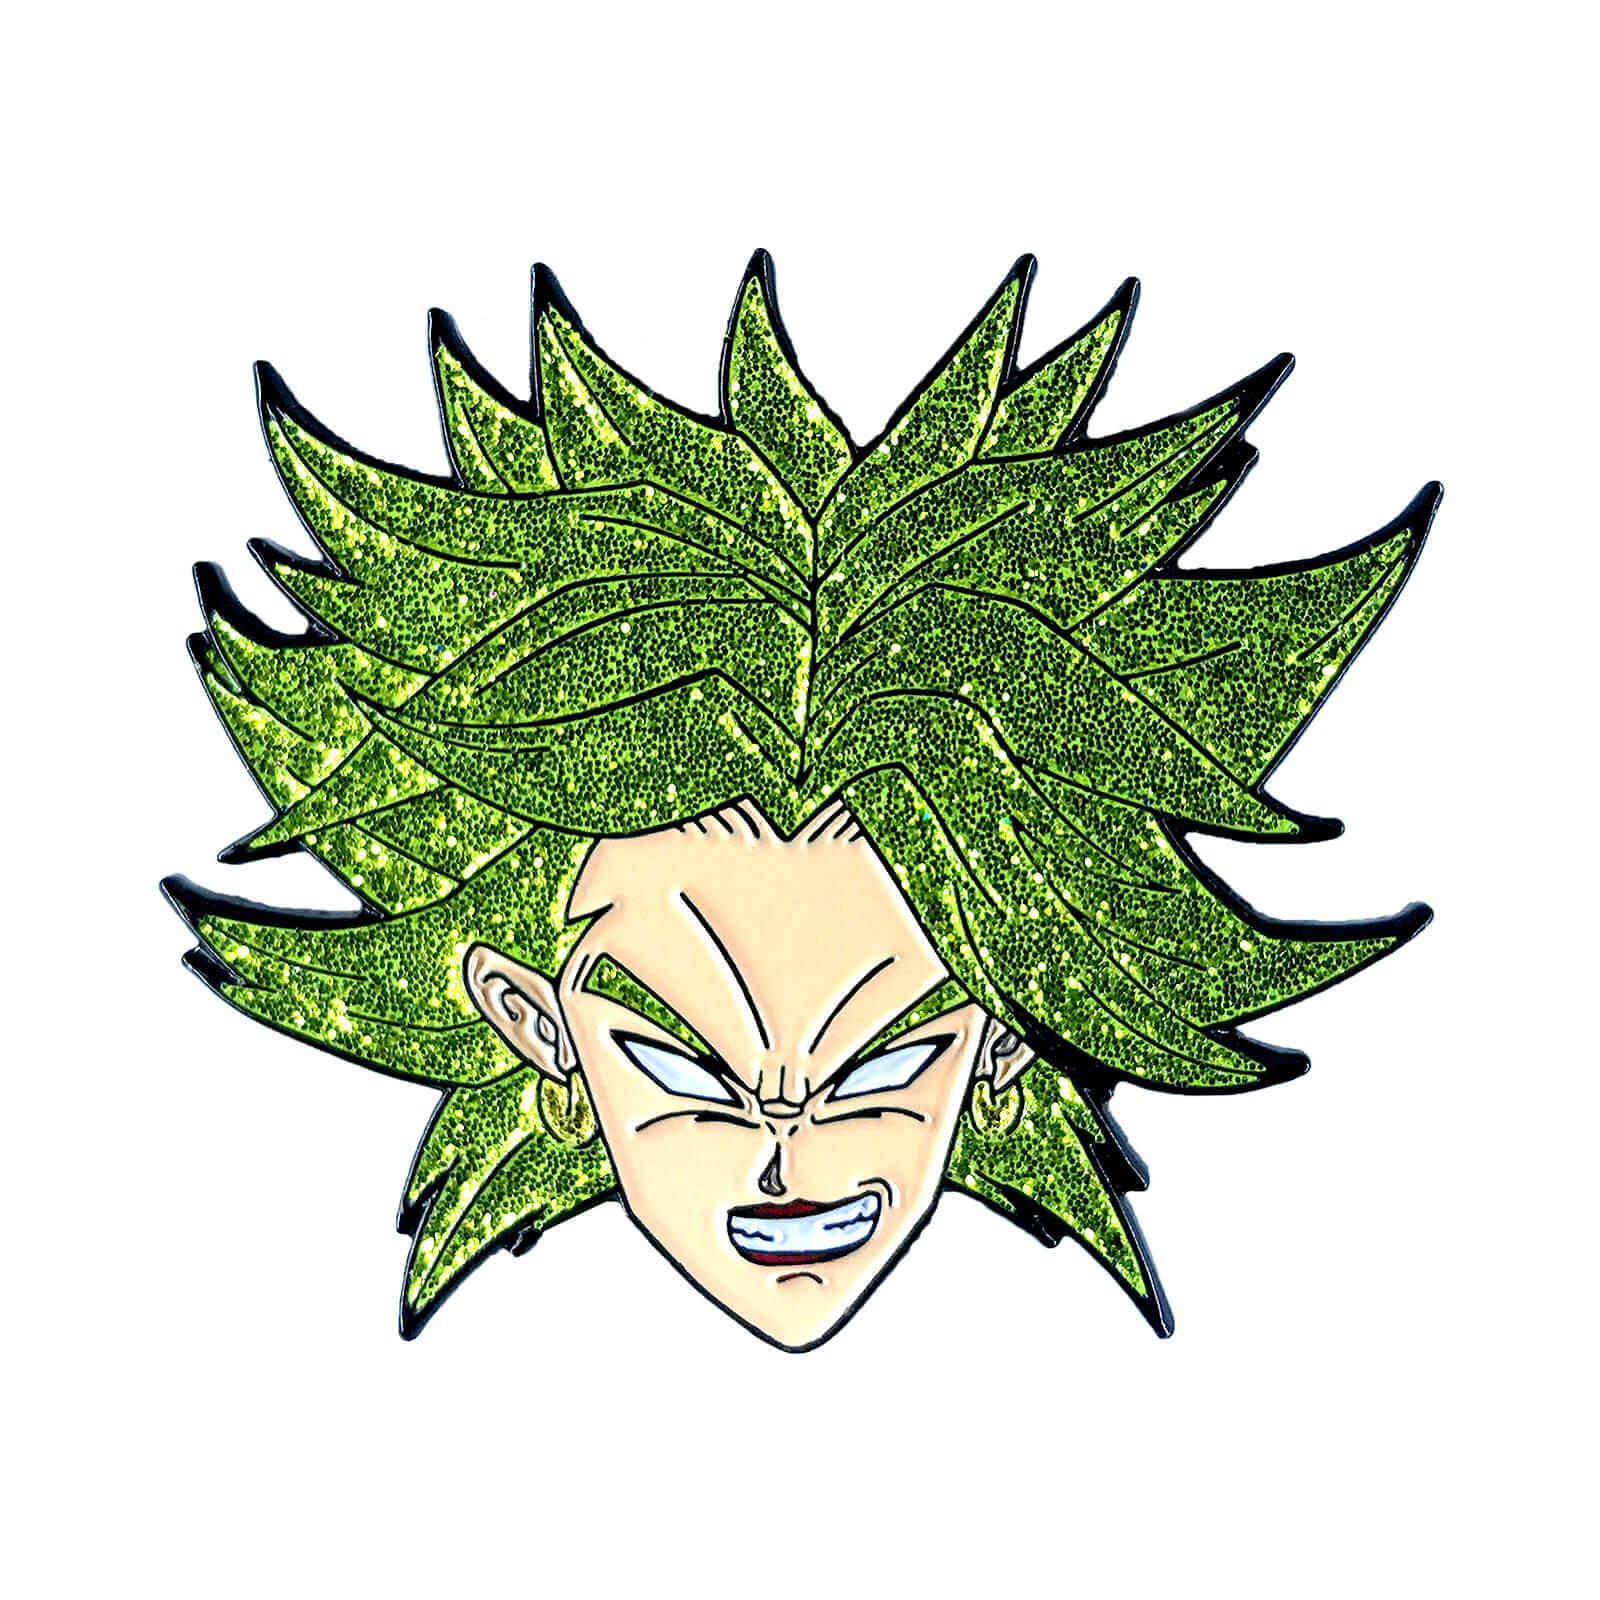 Kale Legendary Super Saiyan Enamel Pin